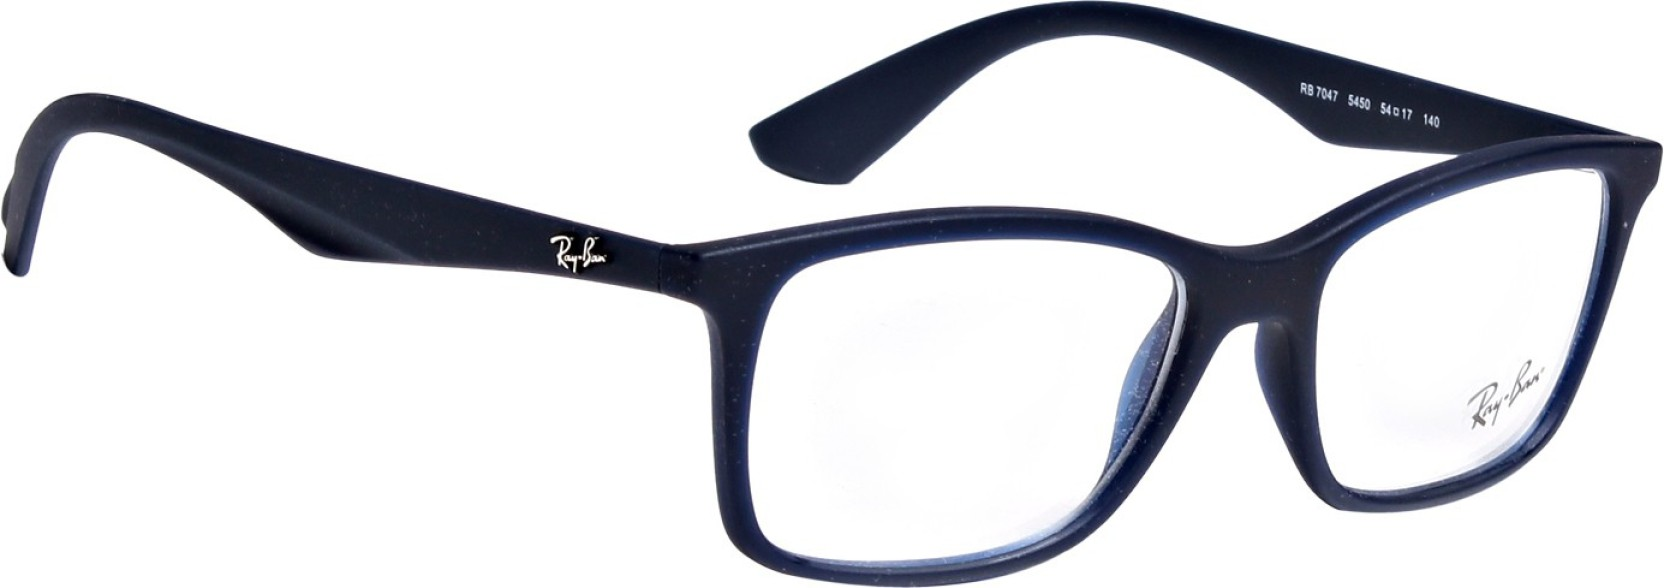 dafaced94a1 Ray-Ban Full Rim Wayfarer Frame Price in India - Buy Ray-Ban Full ...